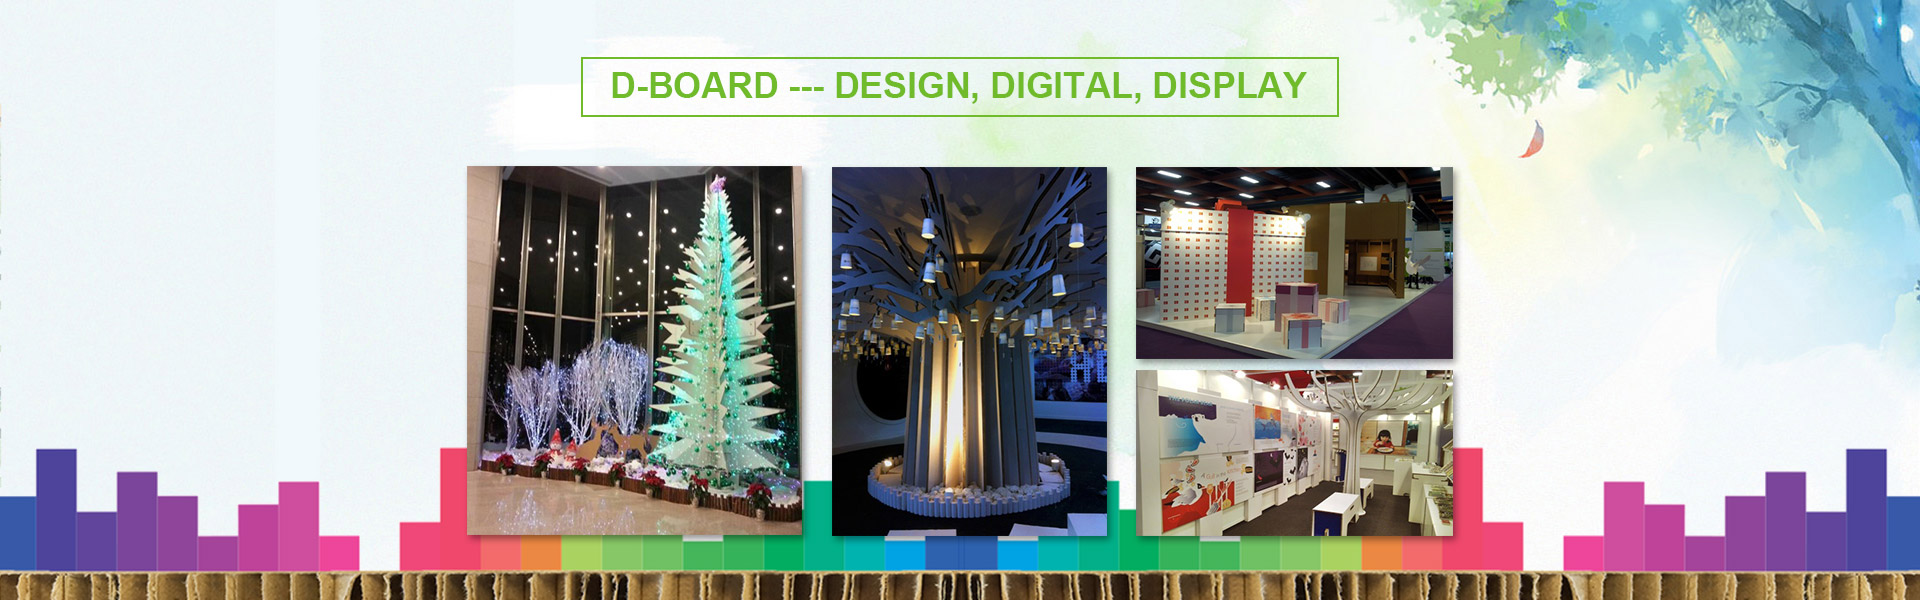 D-BOARD---DESIGN,DIGITAL,DISPLAY